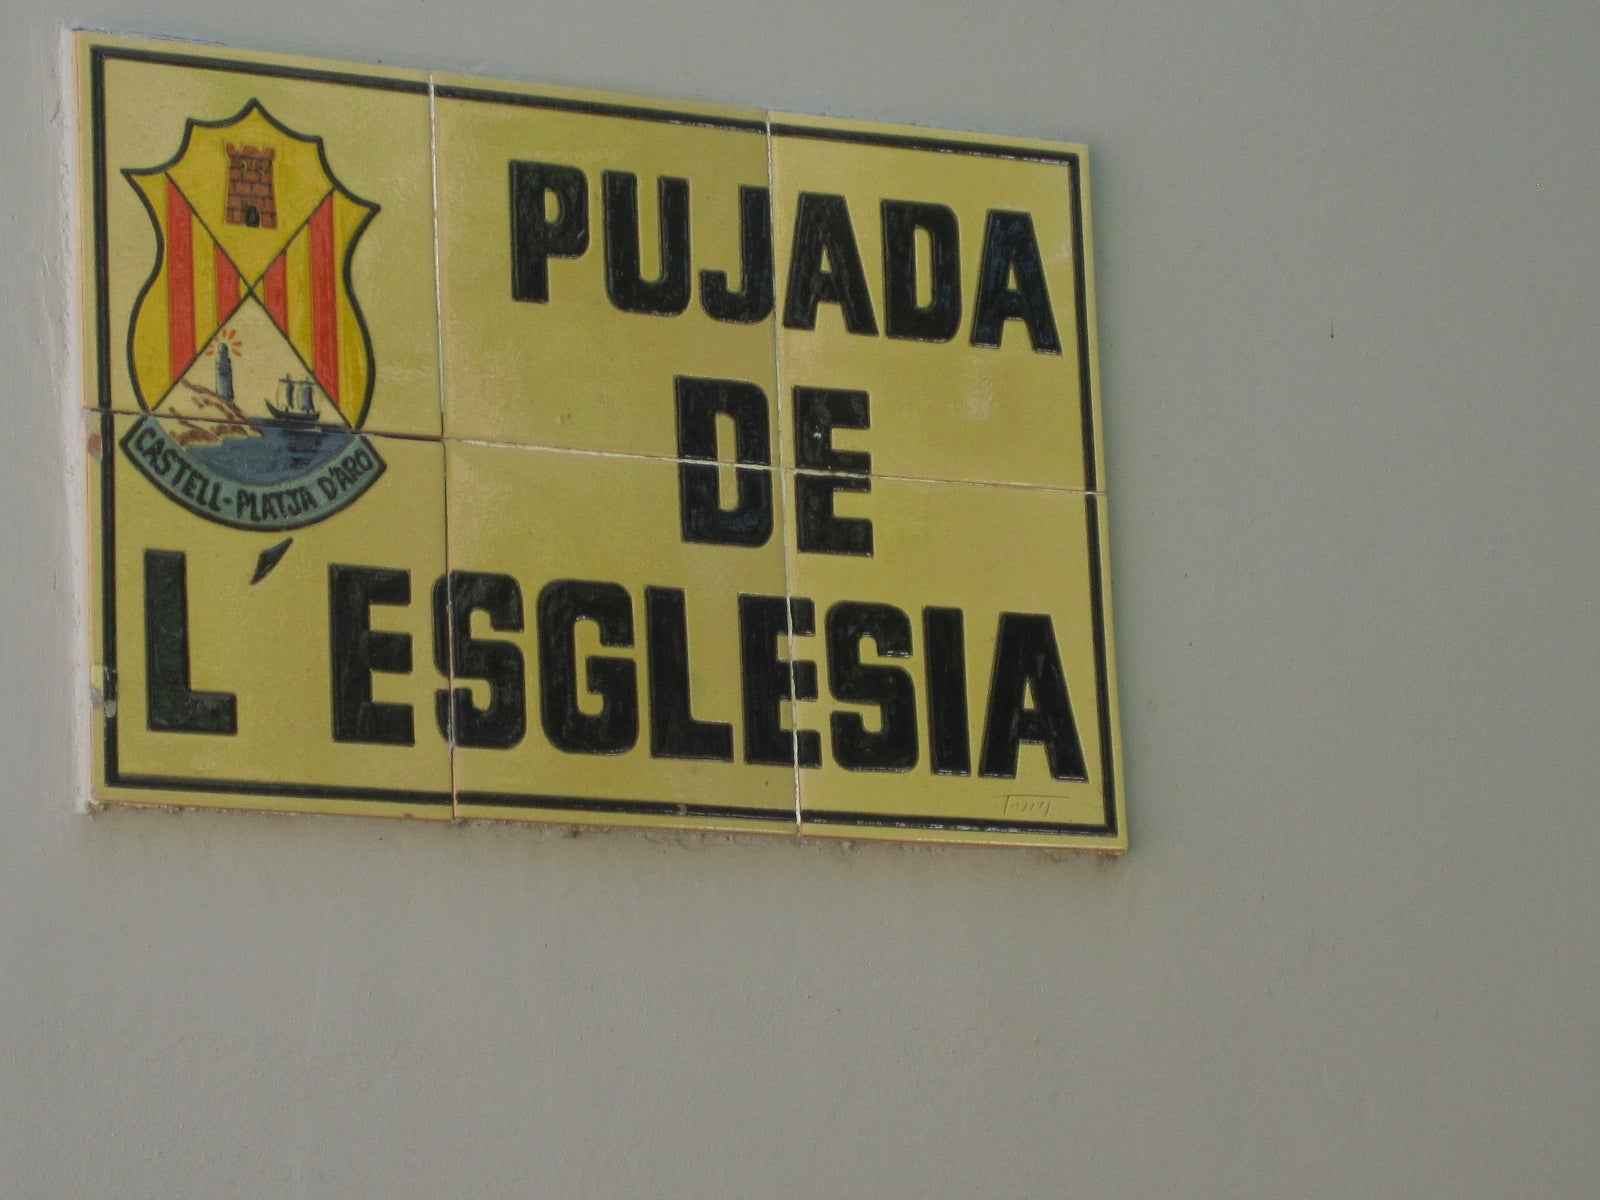 Pujada of the Church (rise of the Church)